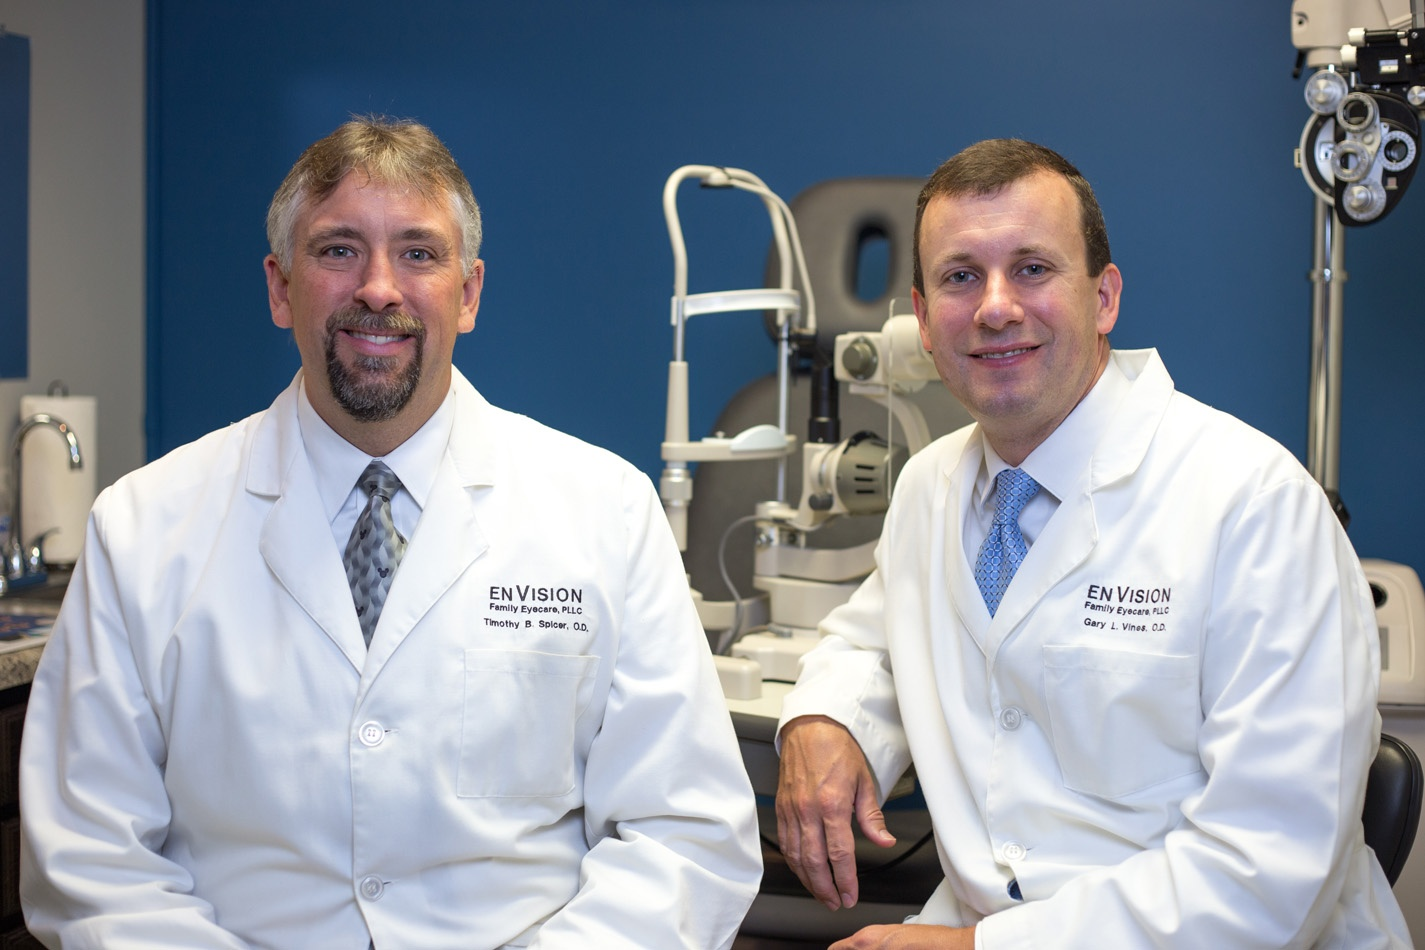 Envision family eyecare doctors